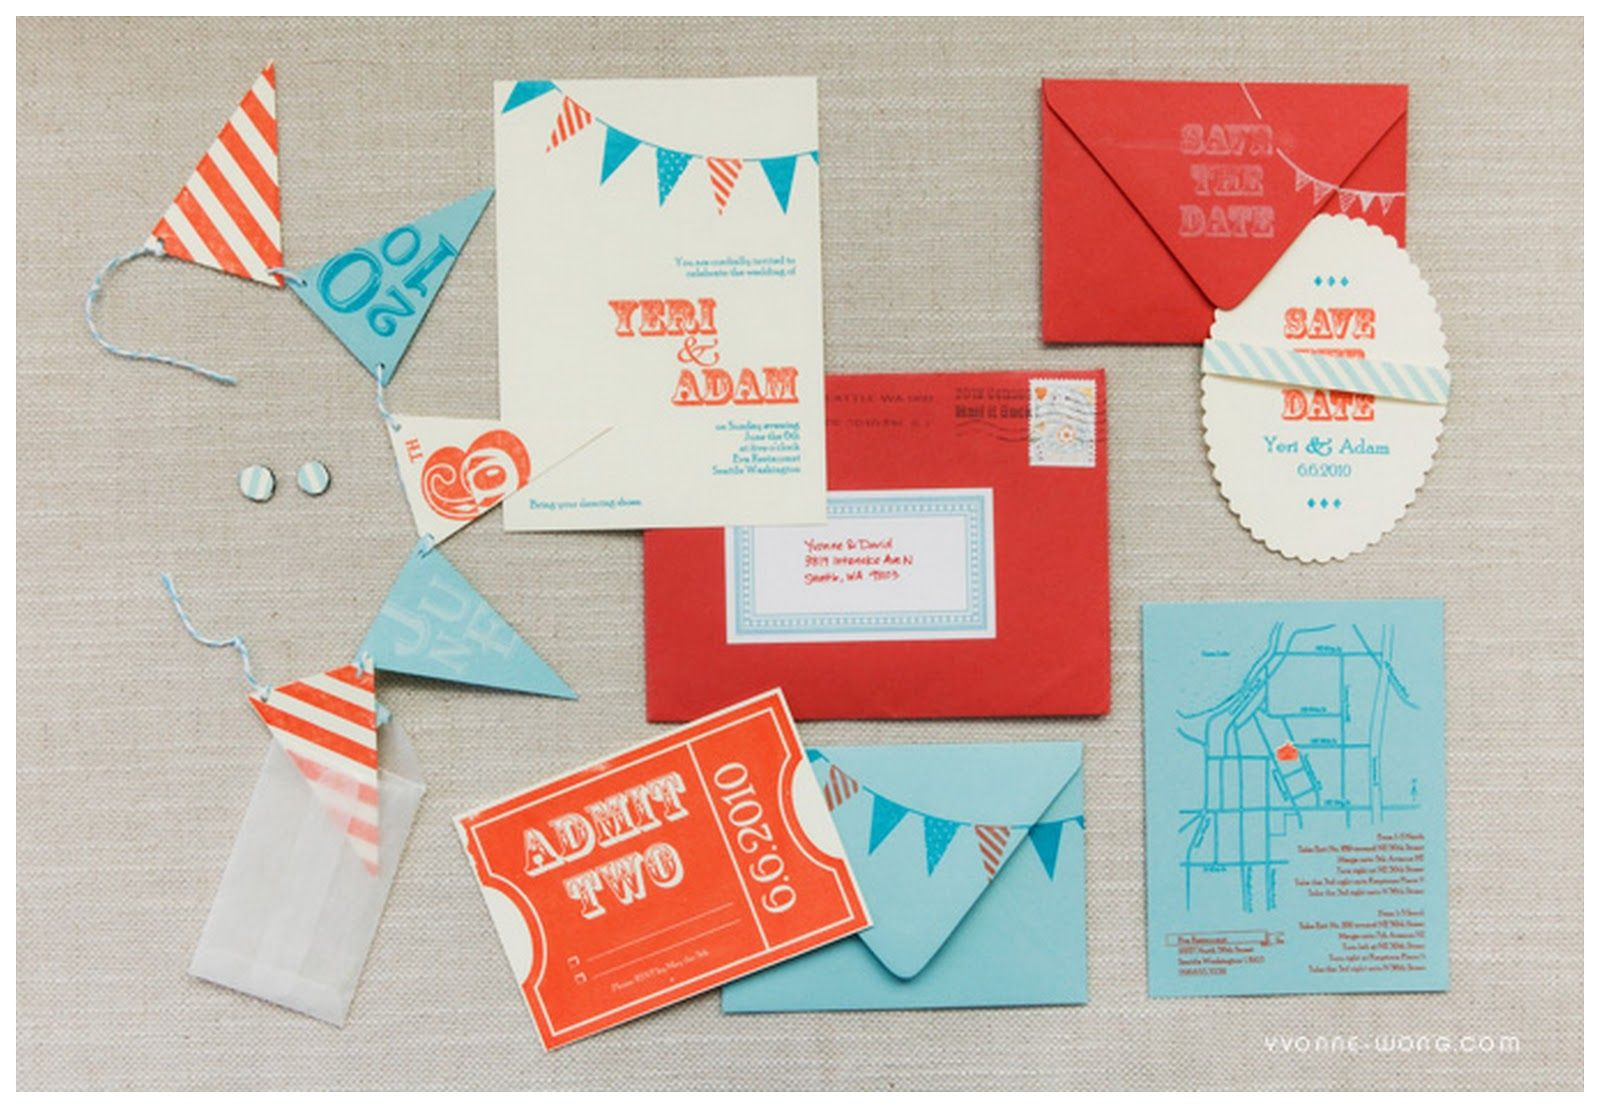 How To Make Your Wedding Stationery Stand Out | Wedding Invitations ...